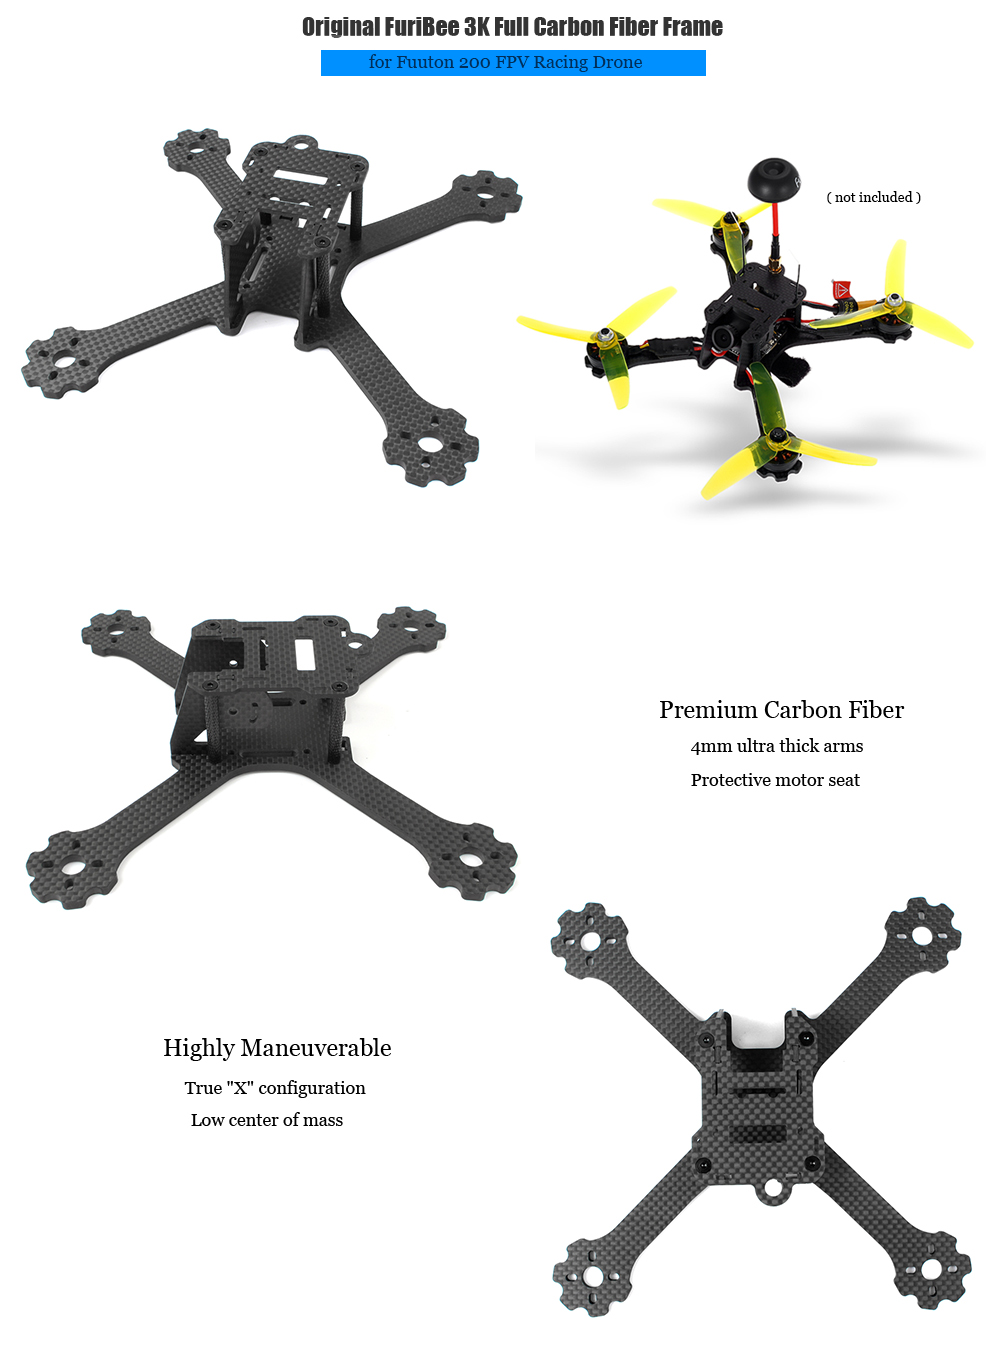 Original FuriBee 3K Full Carbon Fiber Frame with 4mm Thick Arms for Fuuton 200 RC Racing Drone